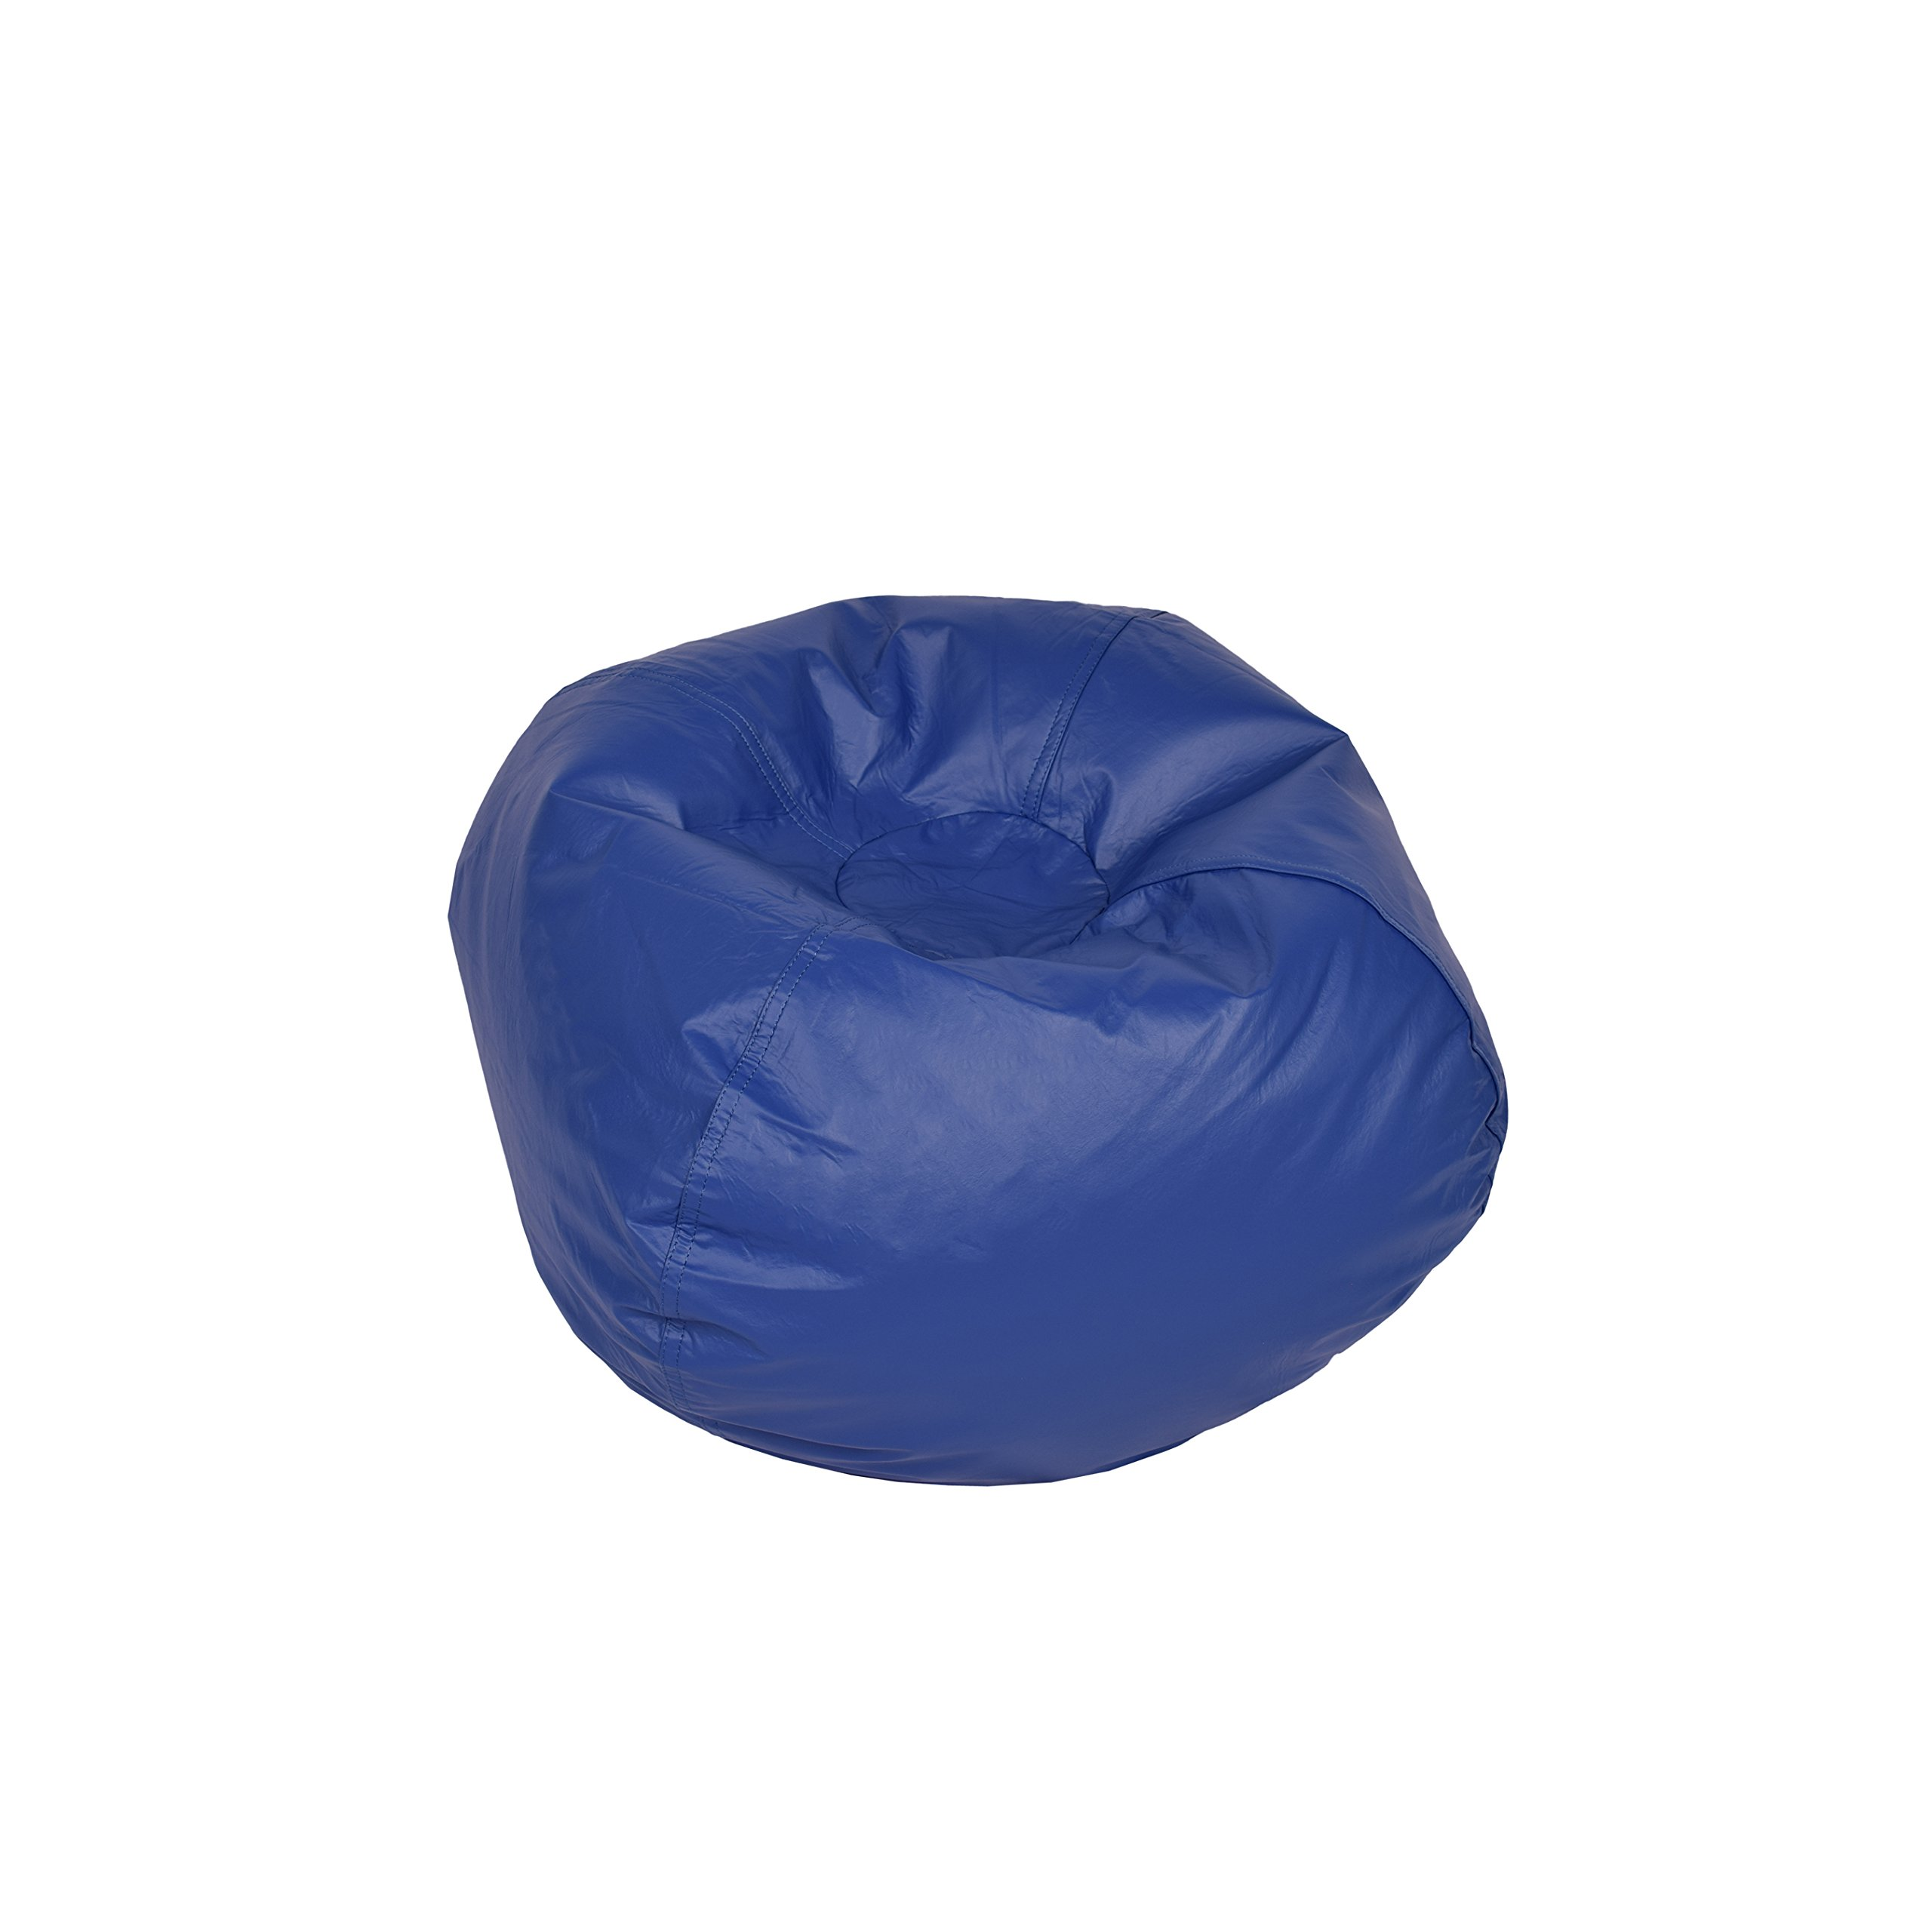 Classic Bean Bag Chair Color: Blue Shiny